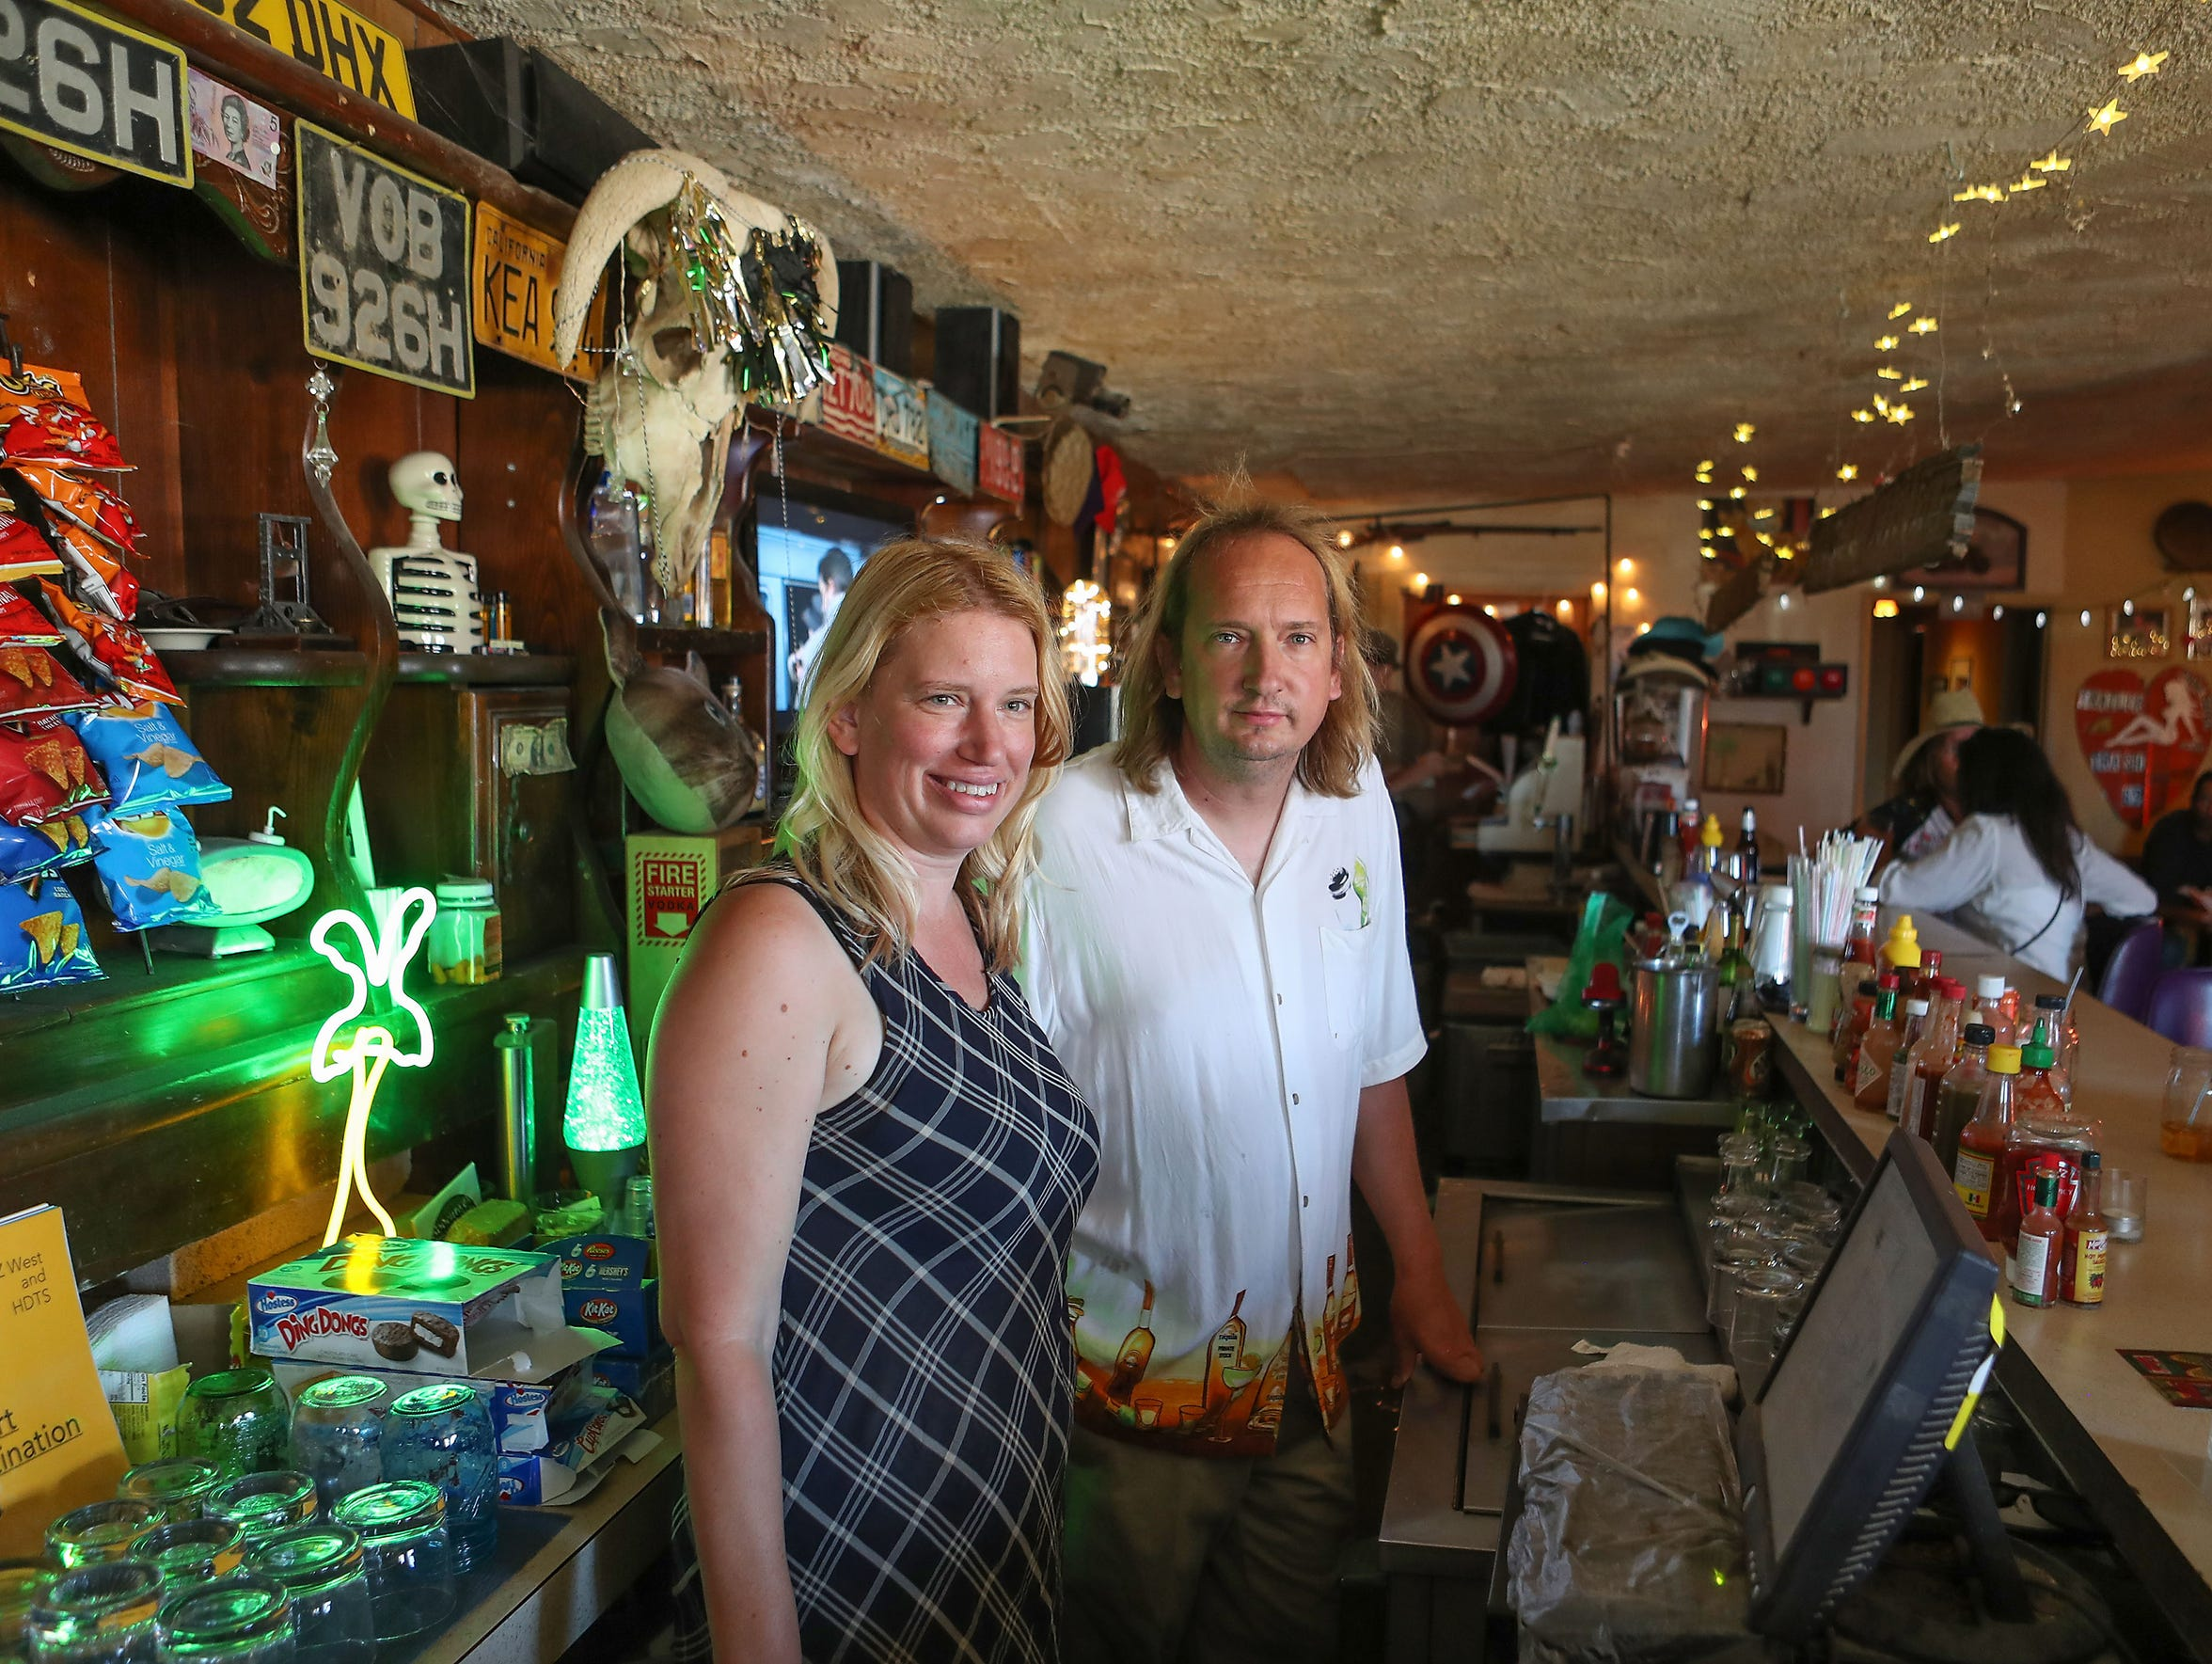 Siblings Laura and James Sibley own the Palms Restaurant in Wonder Valley.